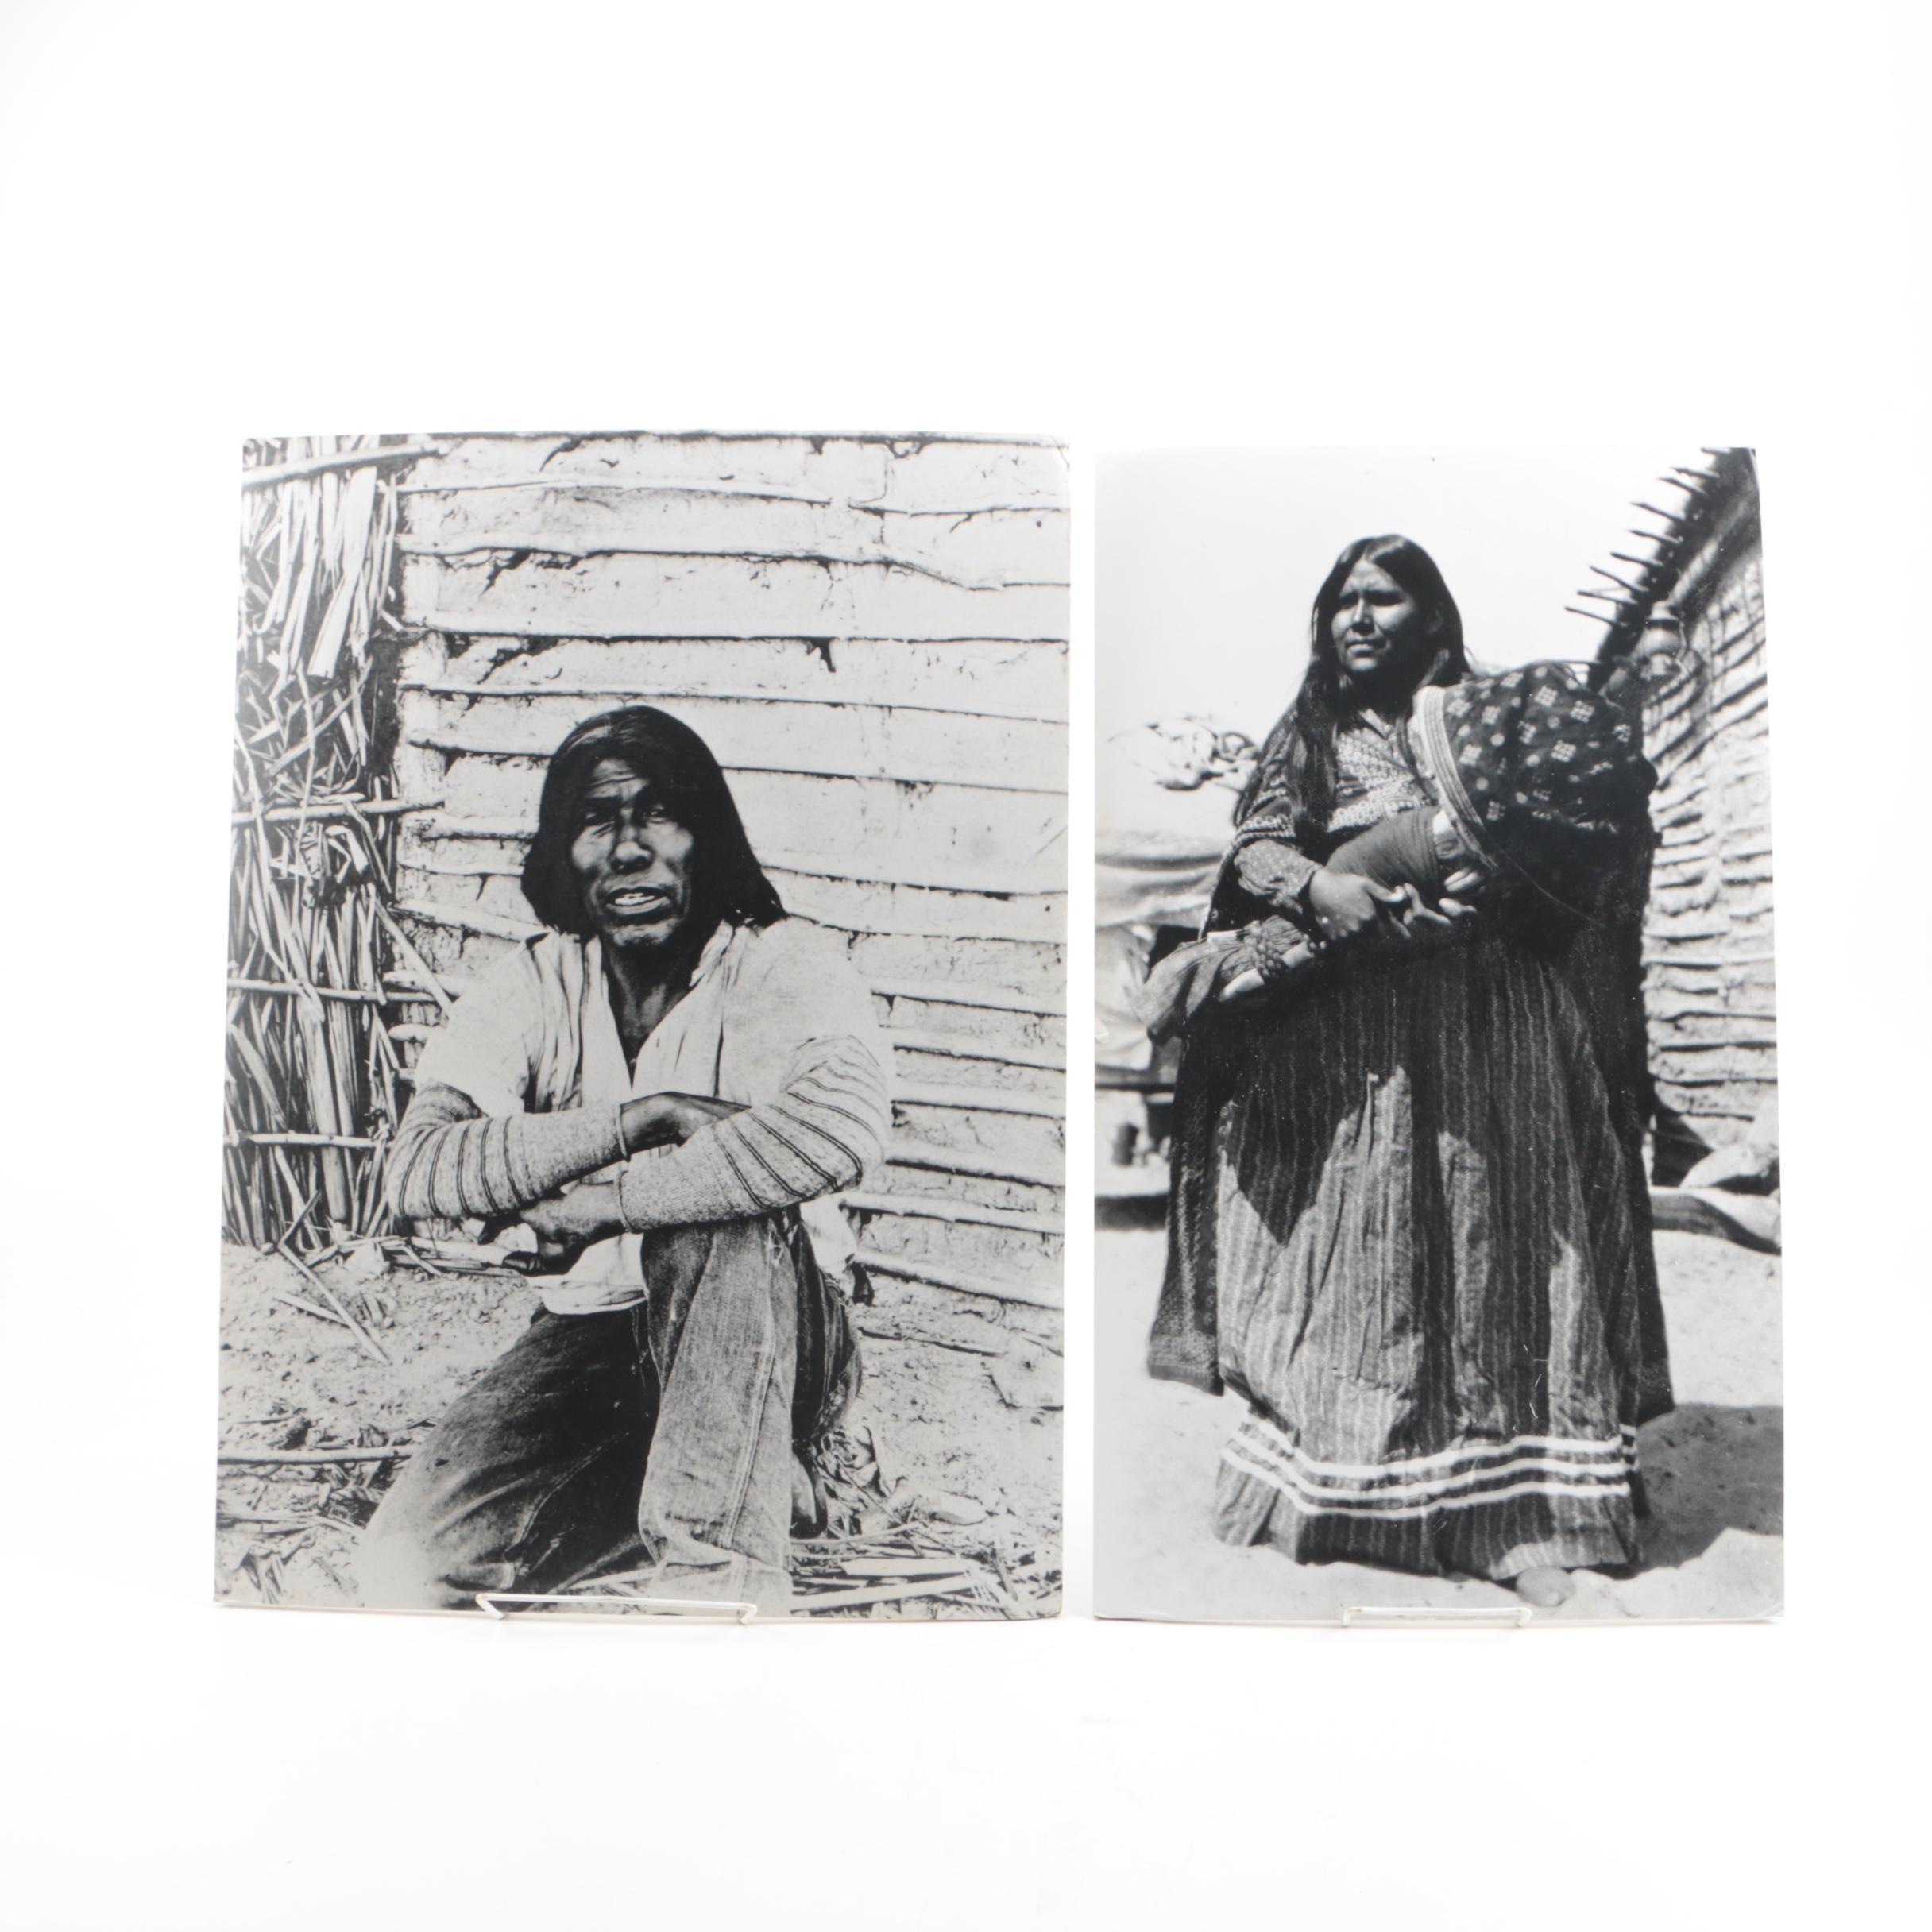 Ruby L. Archambeau Digital Photographs of Native American Figures